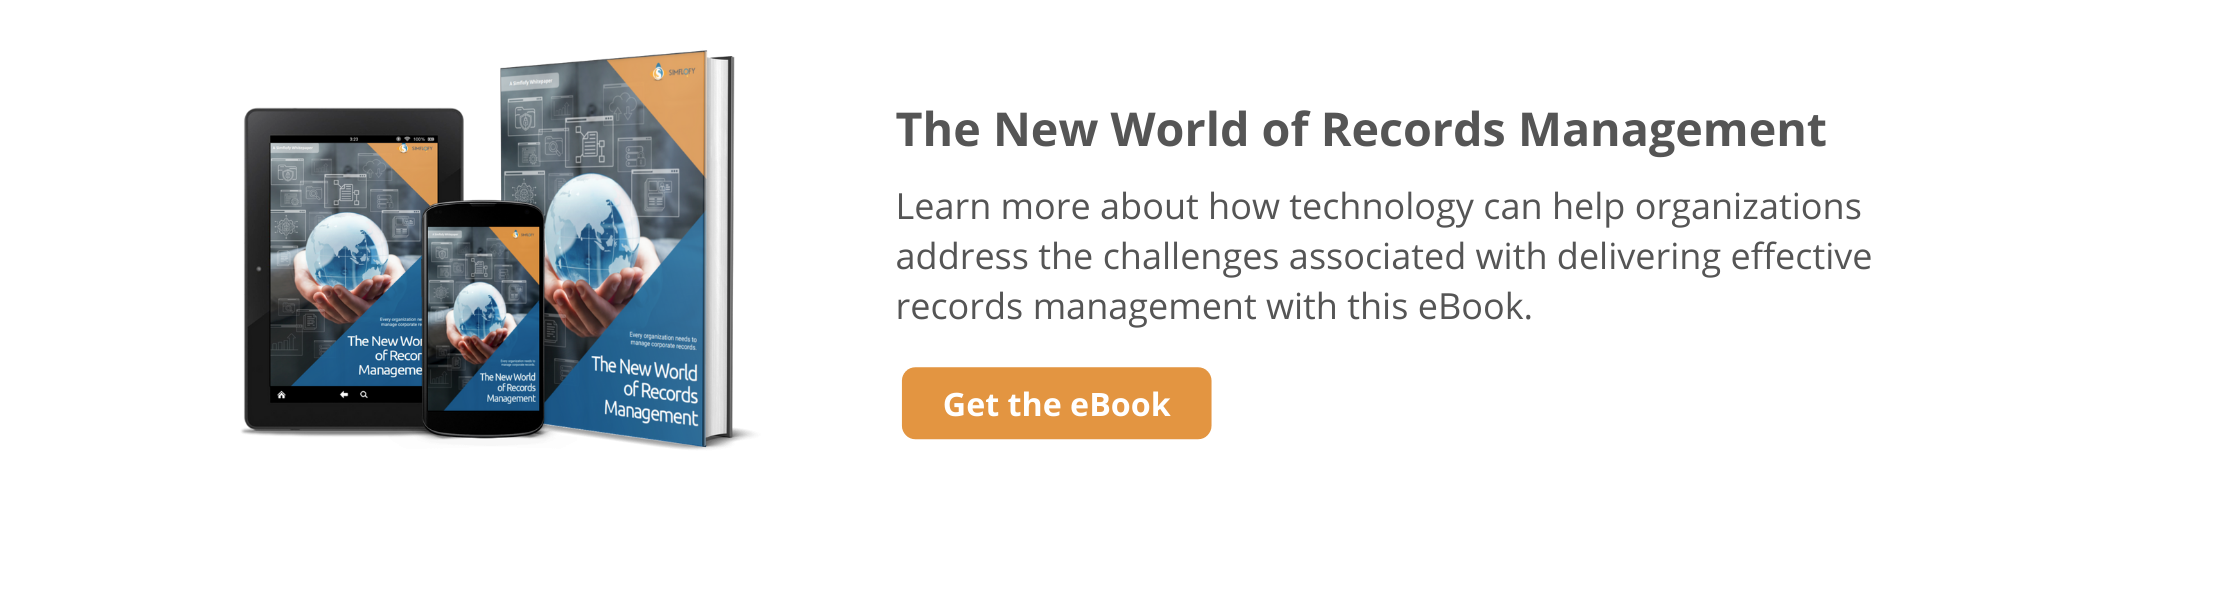 The New World of Records Management eBook